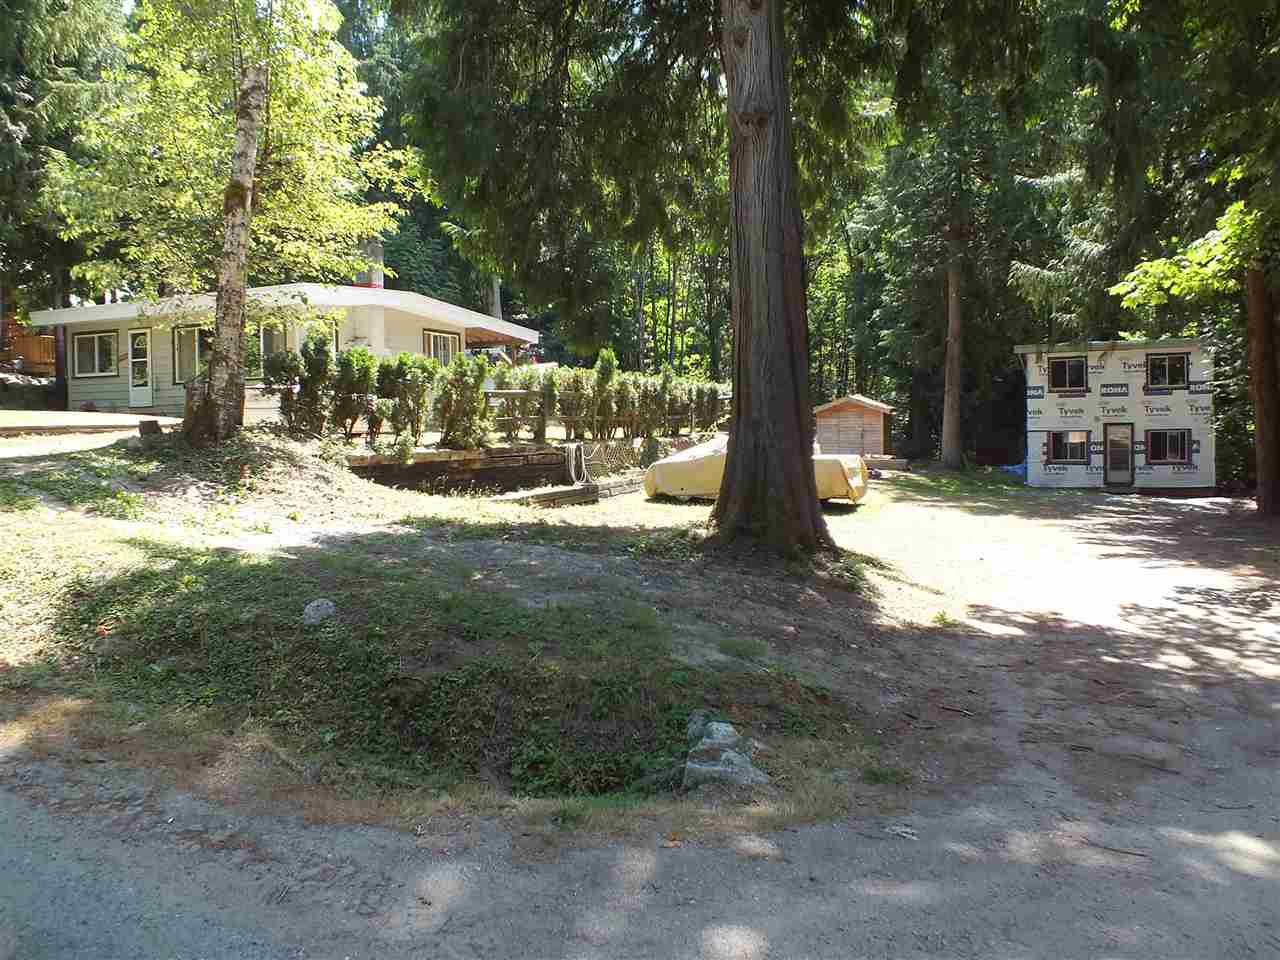 Amazing opportunity just steps from beautiful Kawkawa lake. This beautiful property has great future potential as well as immediate use. Situated on a large .36 acre lot this property features a solid 2 bedroom 1 bathroom rancher as well as a partly finished bunkhouse with loft and bathroom. Excellent opportunity to hold as a recreational or development property. RV hook ups on site. Use as a shared family get away or full time living. Live on site now and build your dream home in the future. Or subdivide into 2 lots once the city gets water to this road. So many options for this gorgeous property. Large covered deck. New roofs. Lots of outdoor space for family activities. Close to boat launch for fishing and water sports.